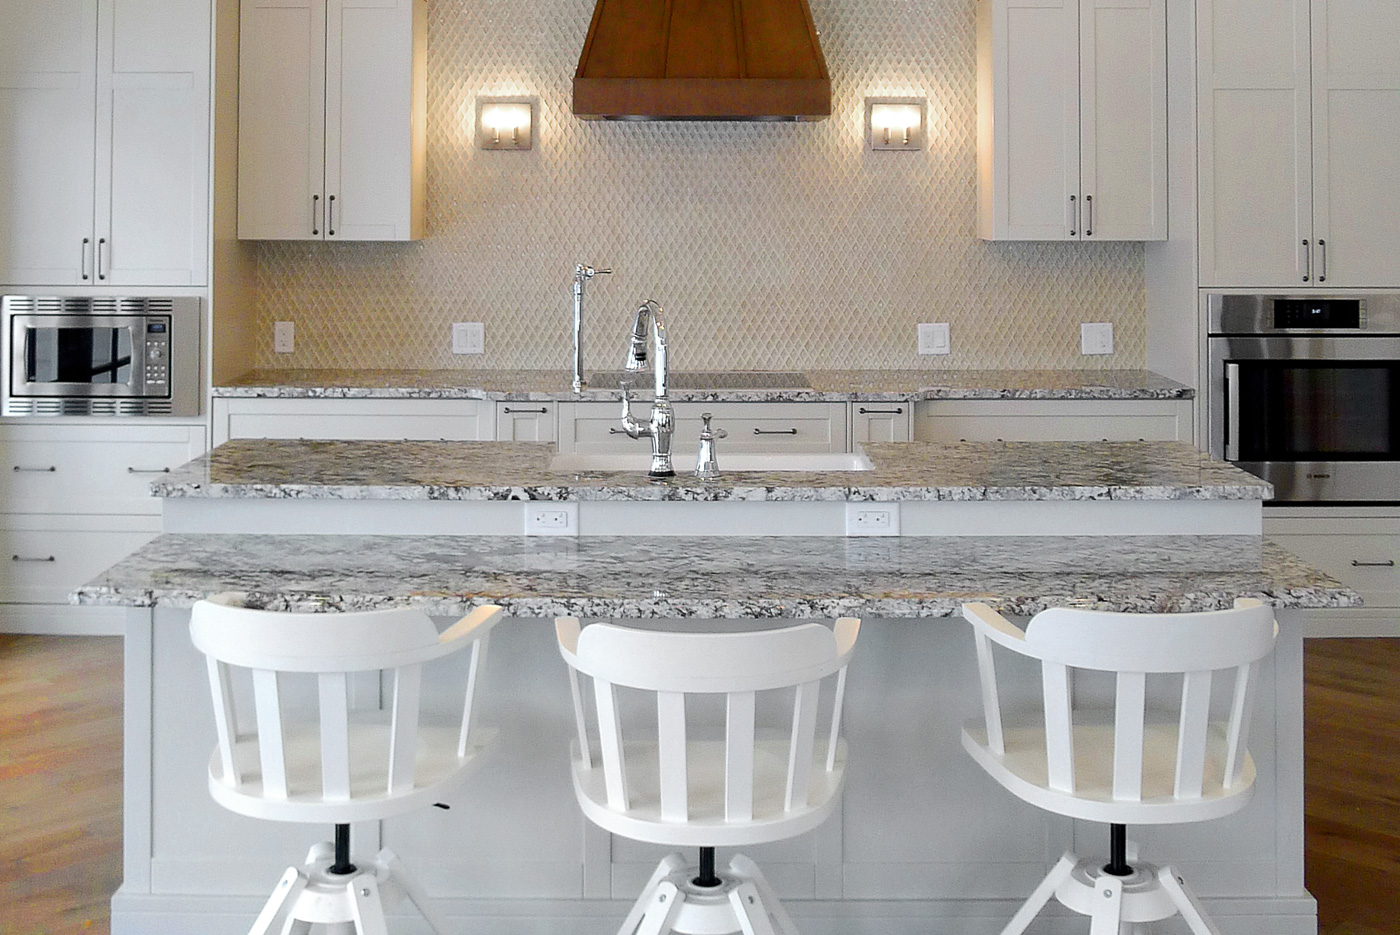 Accessible kitchen by Superior Cabinets and Westridge Homes.